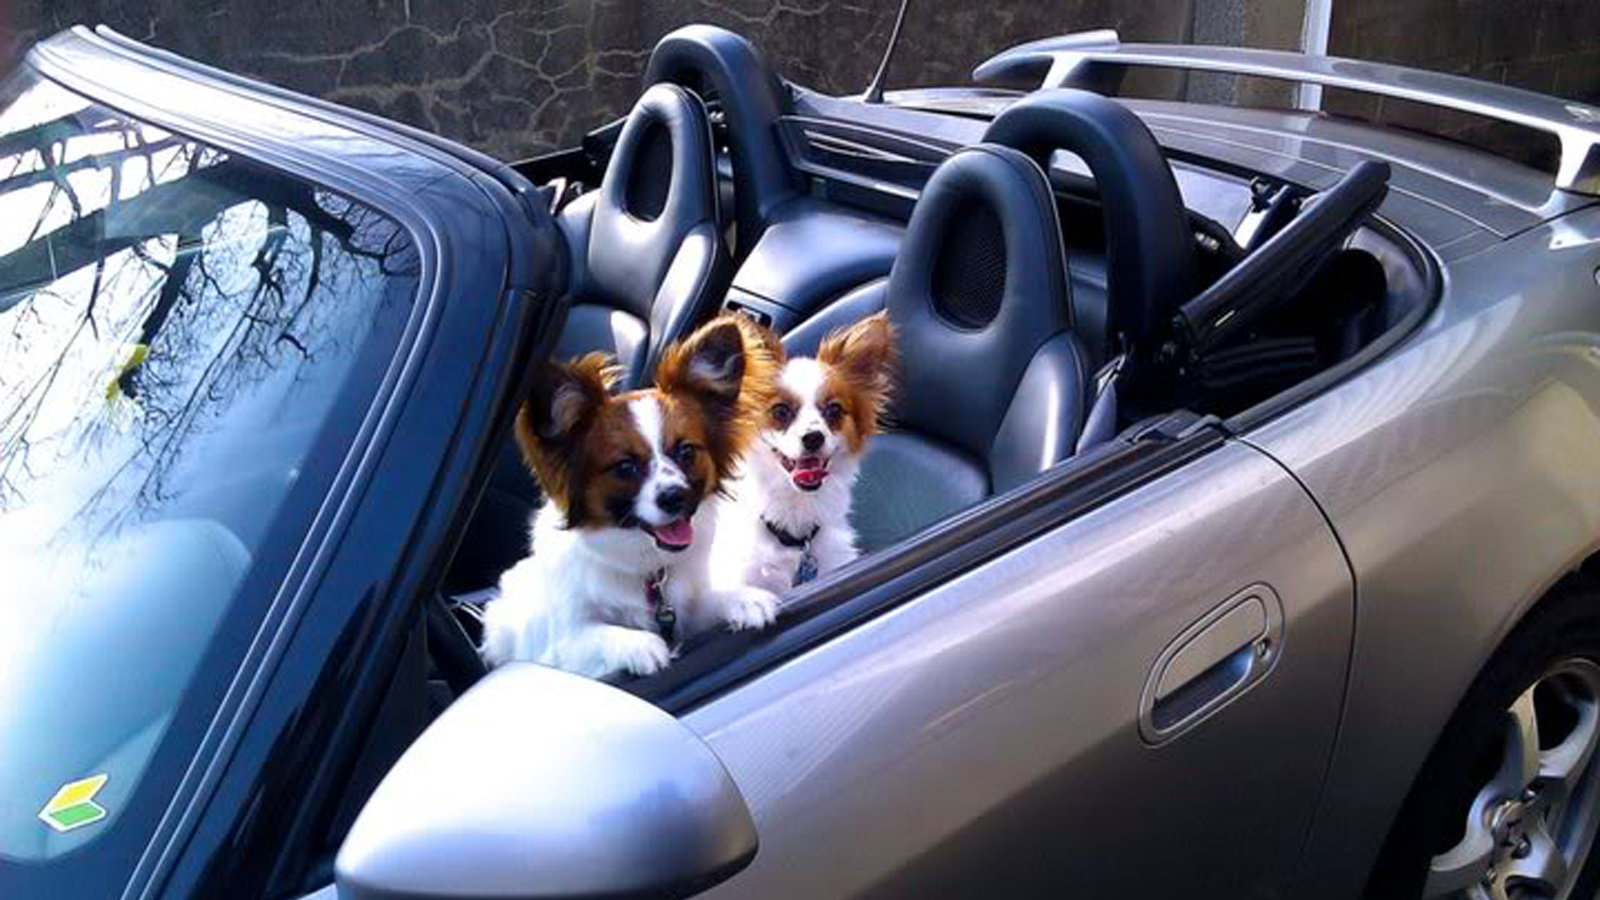 Dogs, Riding in cars, K-9